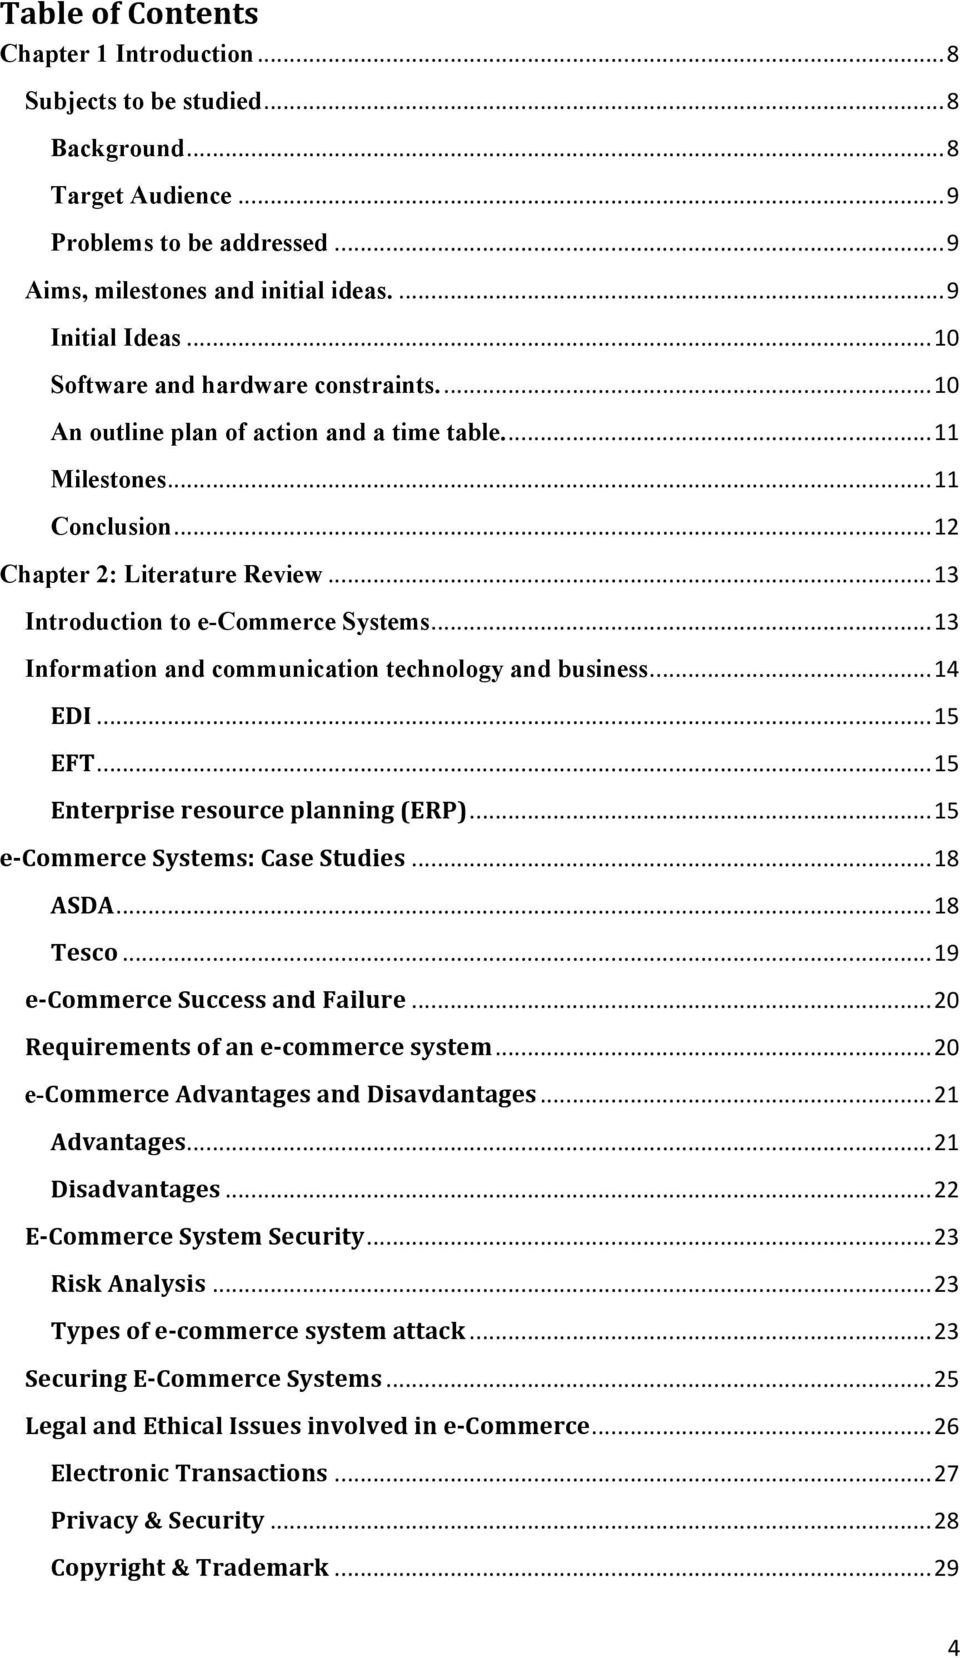 Systems analysis and requirements analysis information technology essay